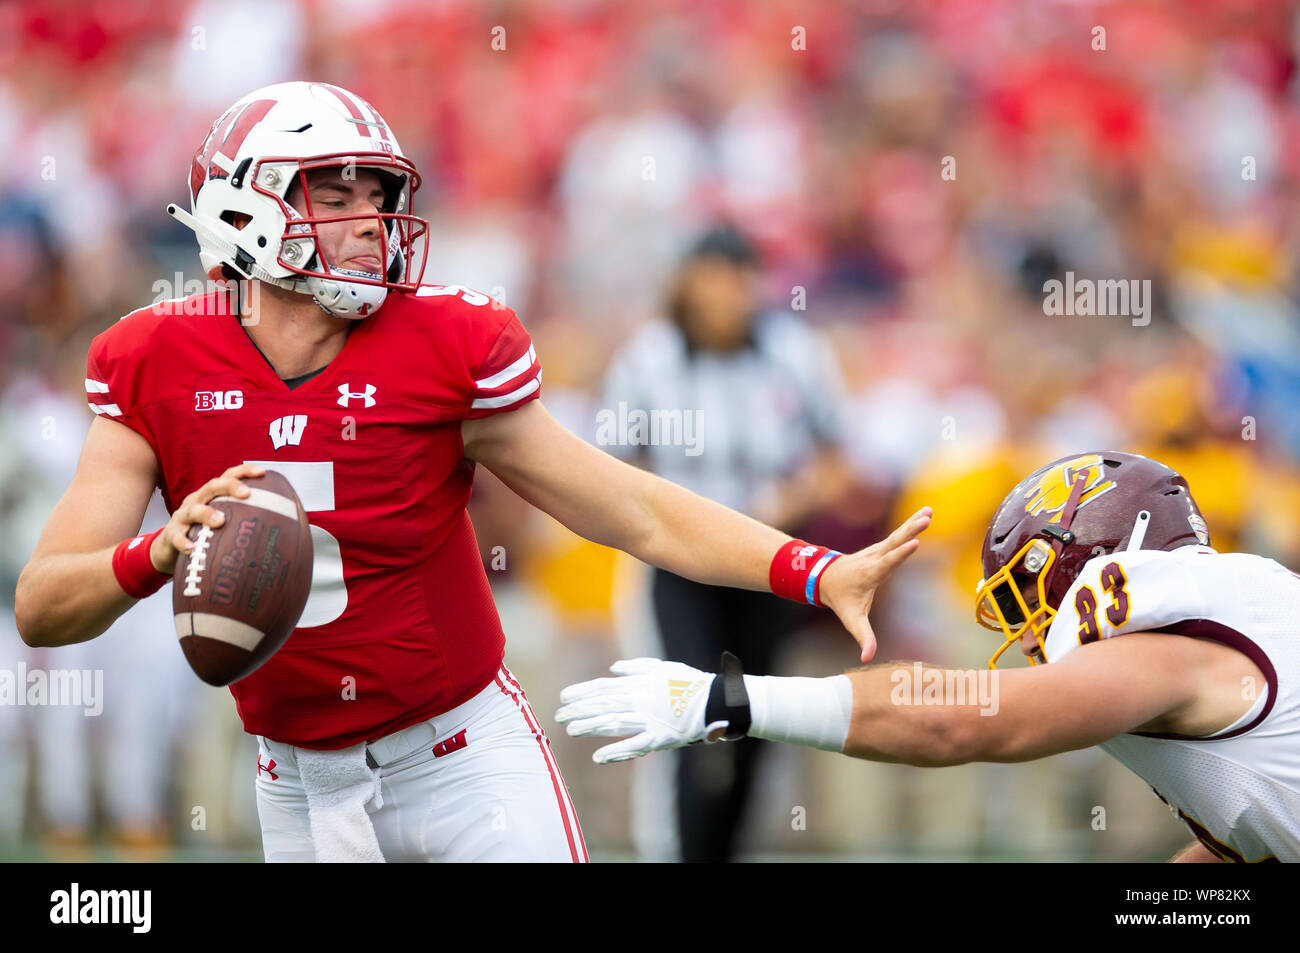 Madison, WI, USA. 7th Sep, 2019. Wisconsin Badgers quarterback Graham Mertz #5 pushes away Central Michigan Chippewas defensive lineman Keegan Cossou #93 while running to his right during the NCAA Football game between the Central Michigan Chippewas and the Wisconsin Badgers at Camp Randall Stadium in Madison, WI. John Fisher/CSM/Alamy Live News Stock Photo